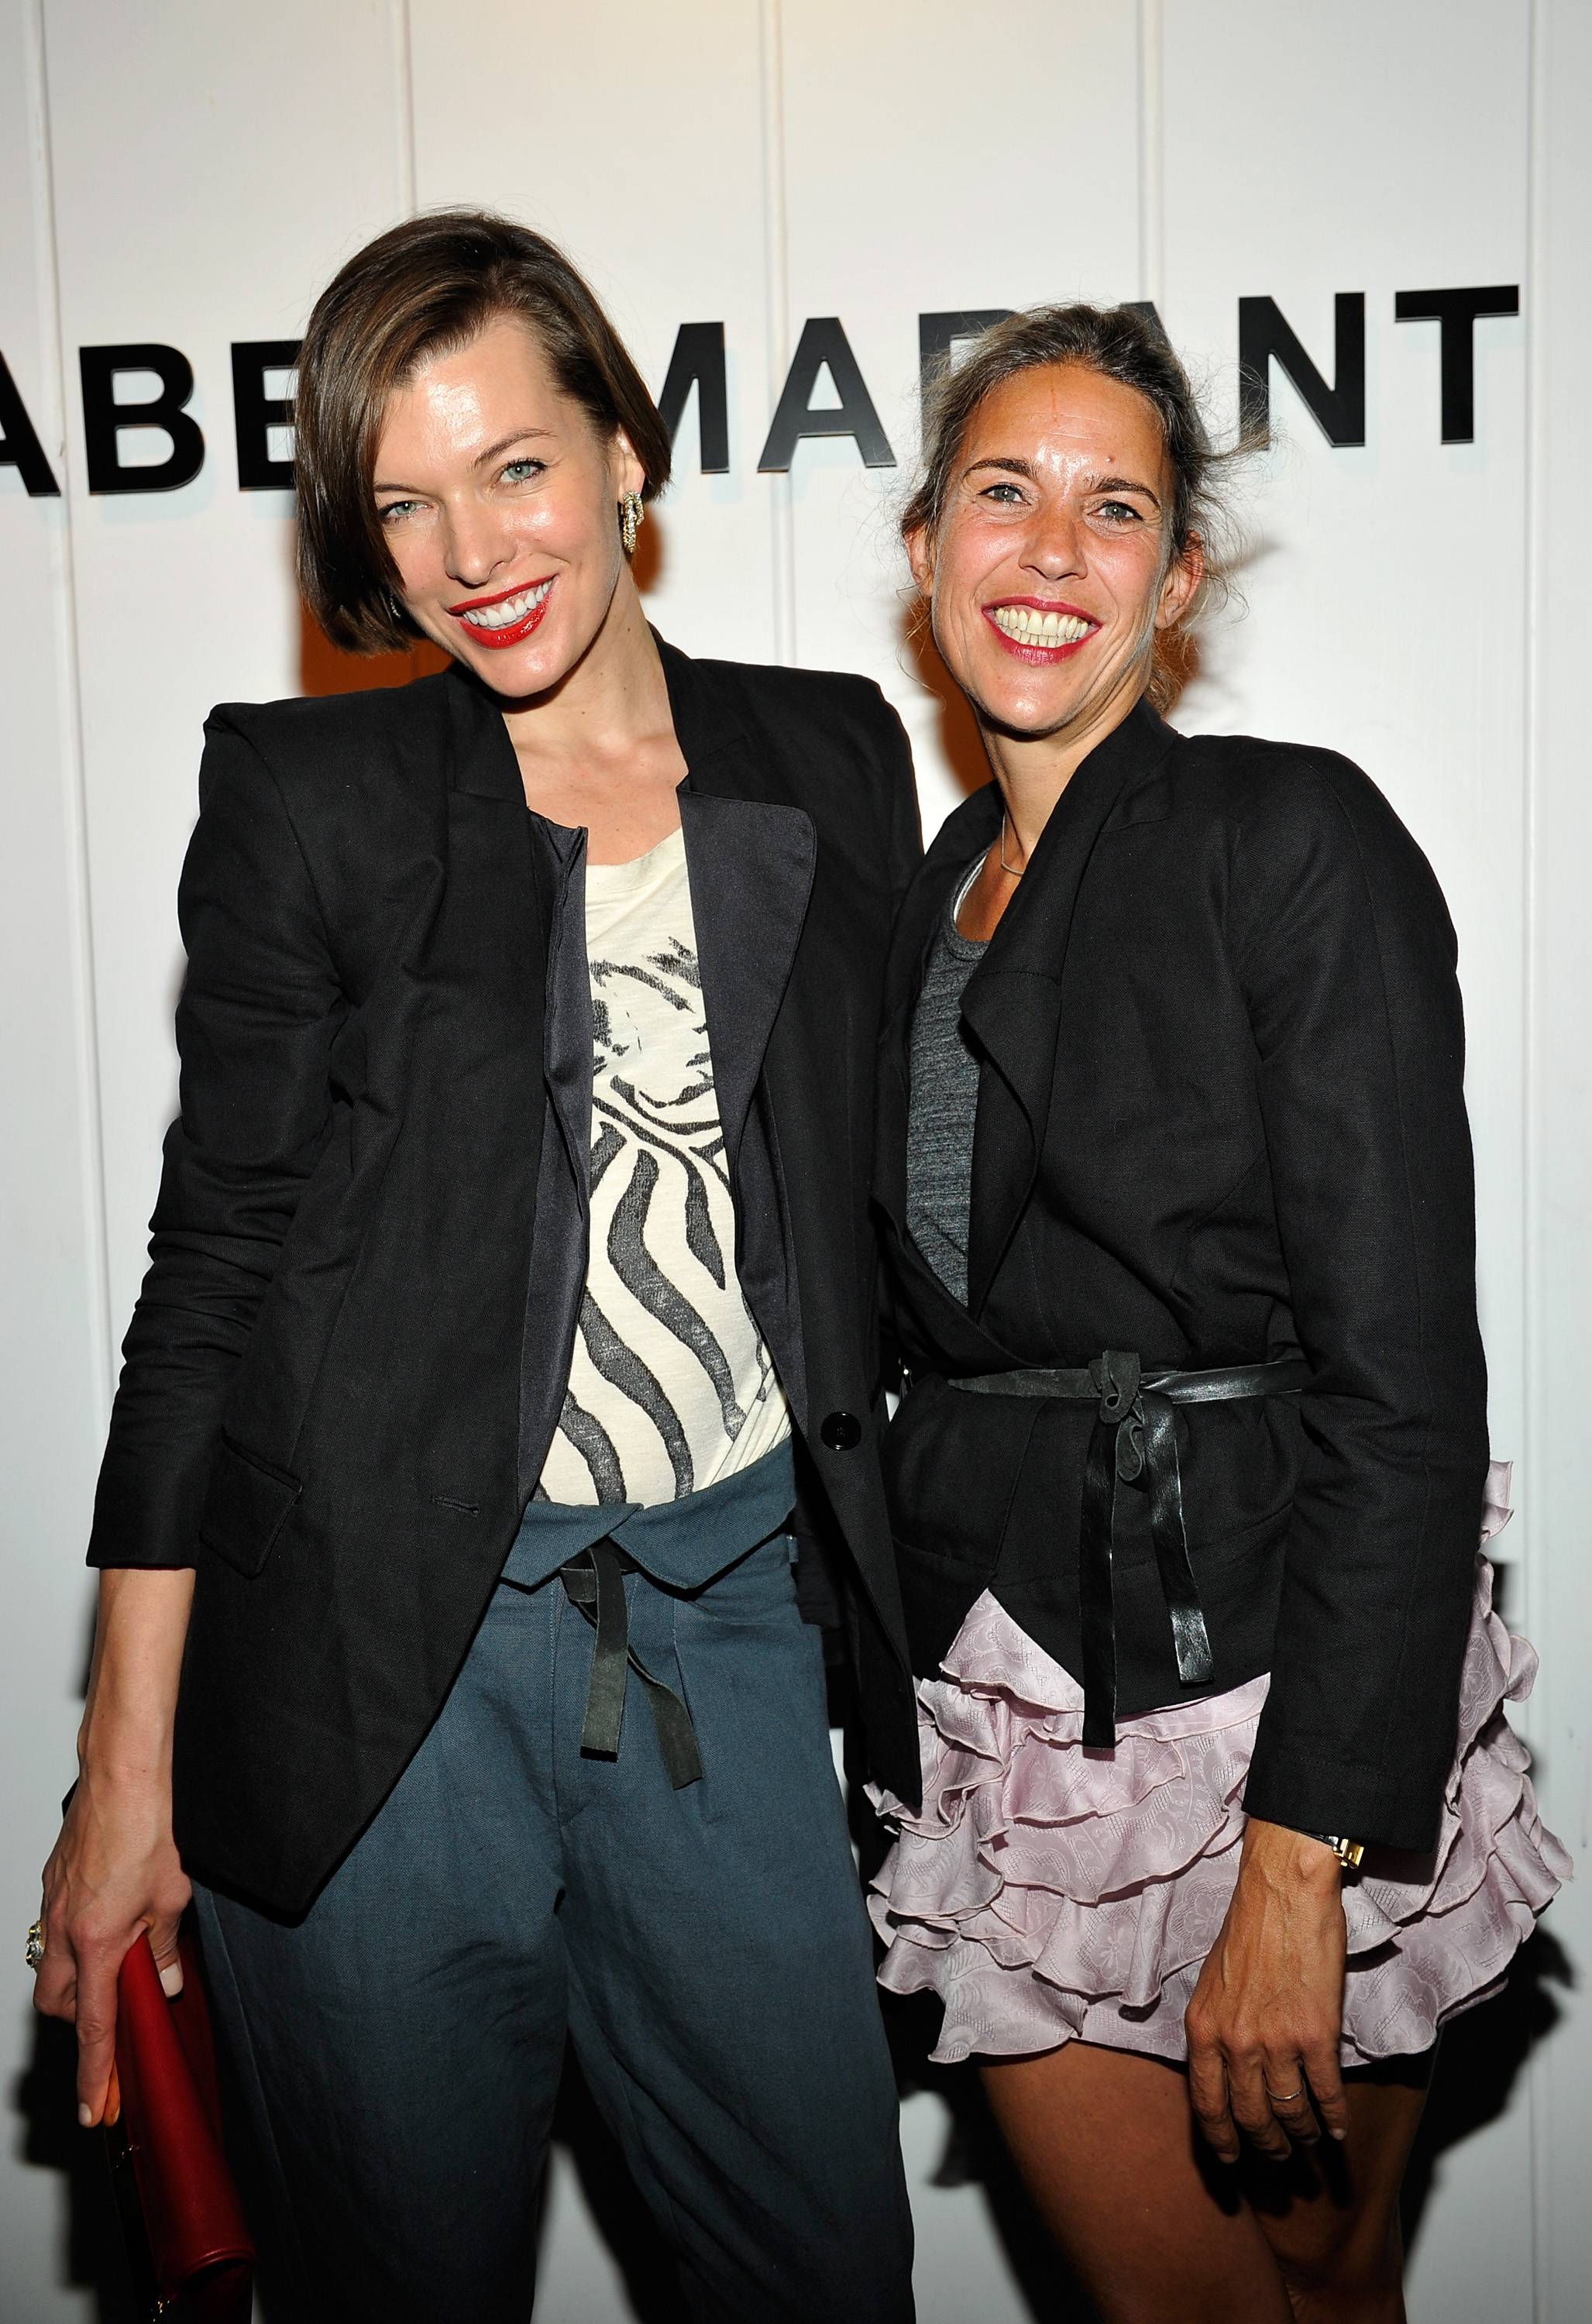 Isabel Marant & Milla Jovovich BBQ Party To Celebrate The 1st Year Of The LA Shop